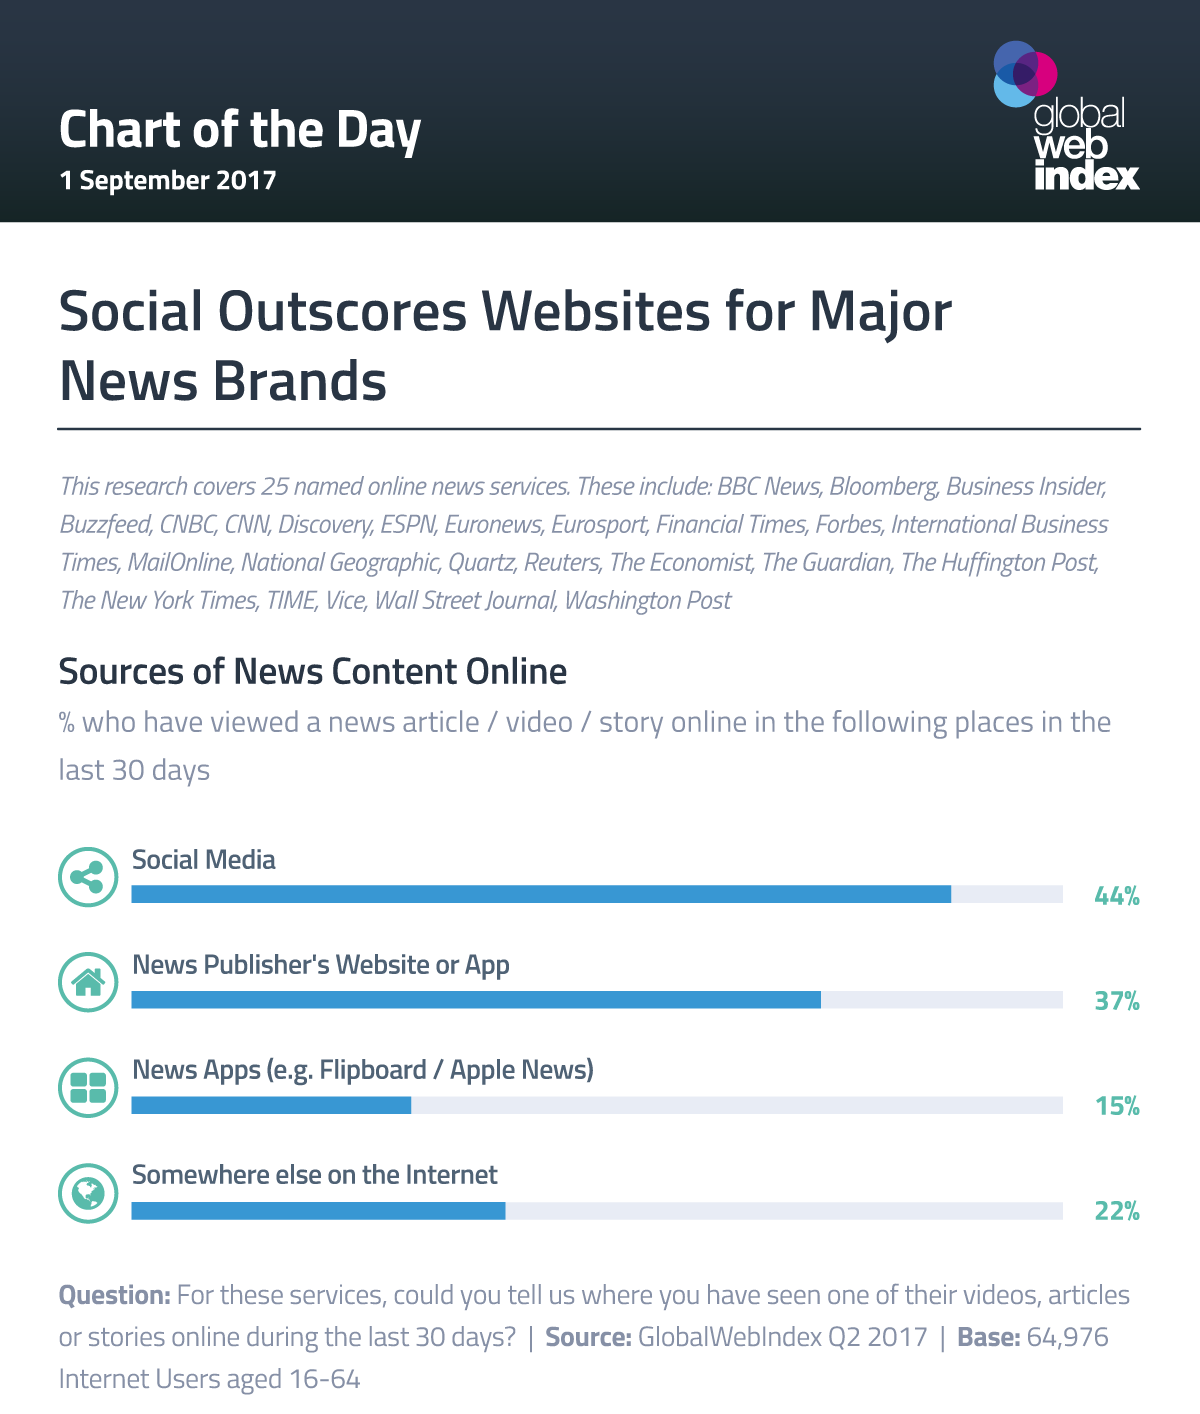 Social Outscores Websites for Major News Brands